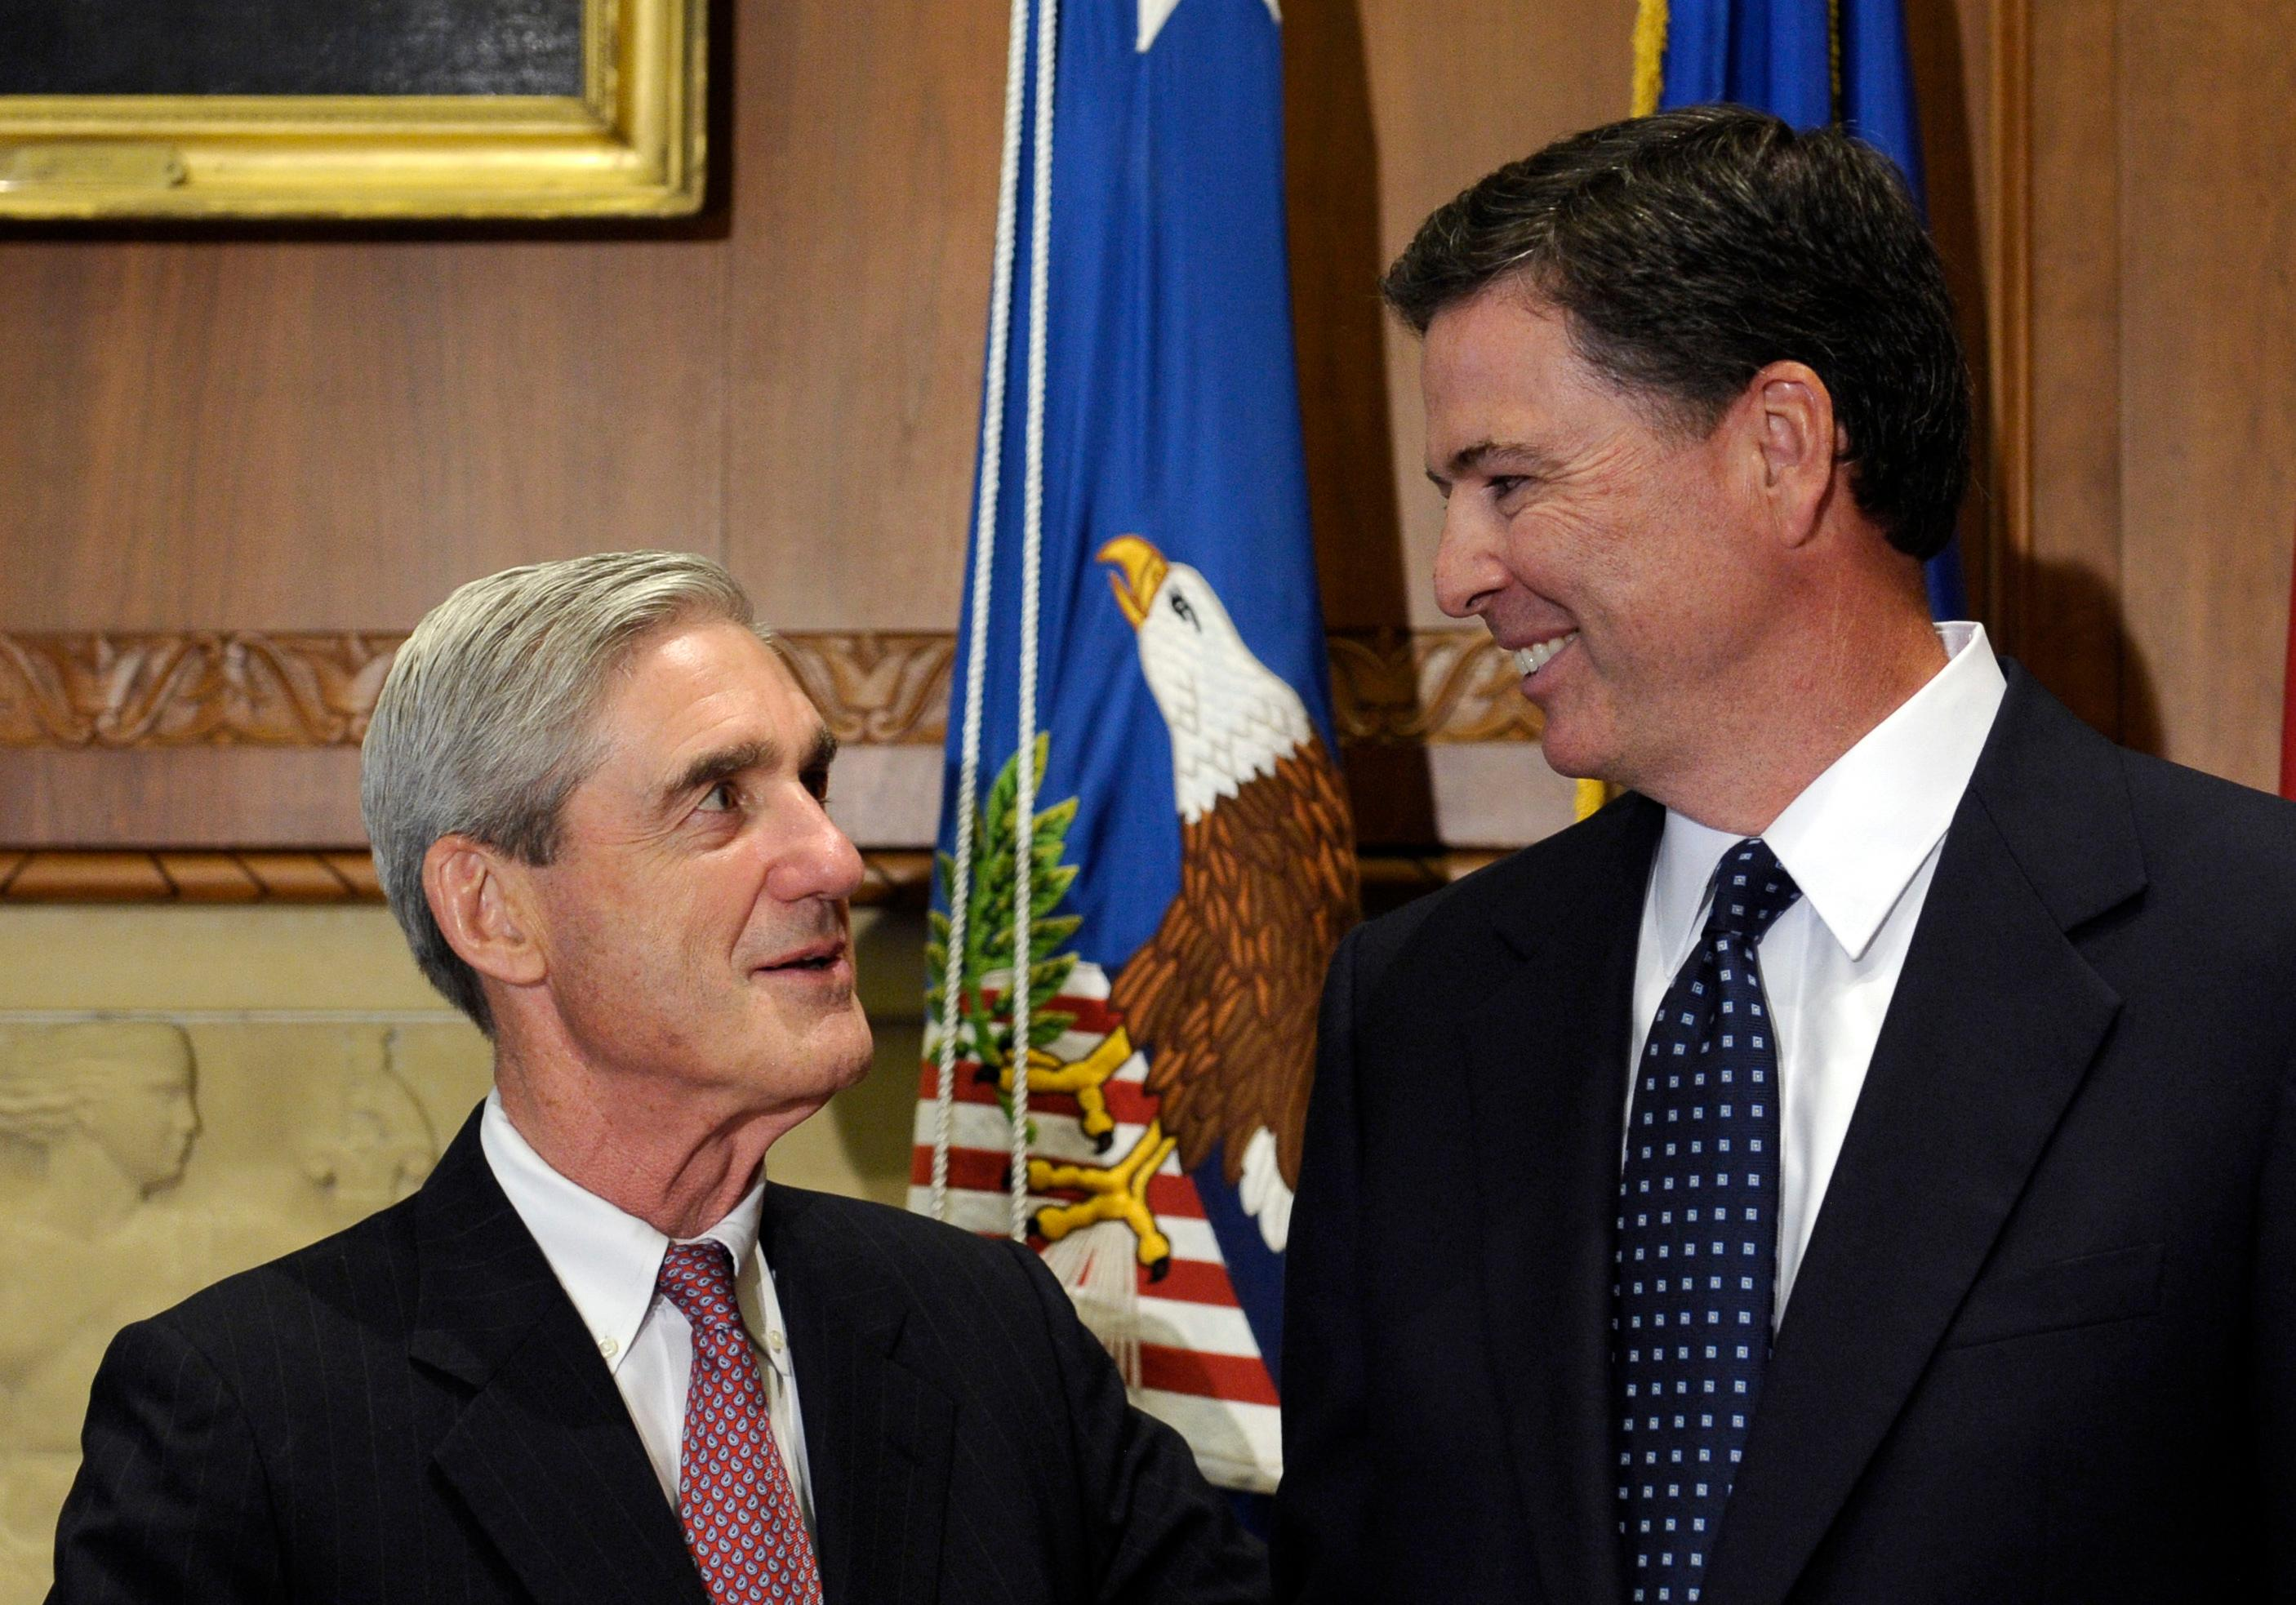 FILE - In this Sept. 4, 2013, file photo, then-incoming FBI Director James Comey talks with outgoing FBI Director Robert Mueller before Comey was officially sworn in at the Justice Department in Washington.  On May 17, 2017, the Justice Department said is appointing Mueller as special counsel to oversee investigation into Russian interference in the 2016 presidential election. (AP Photo/Susan Walsh, File)